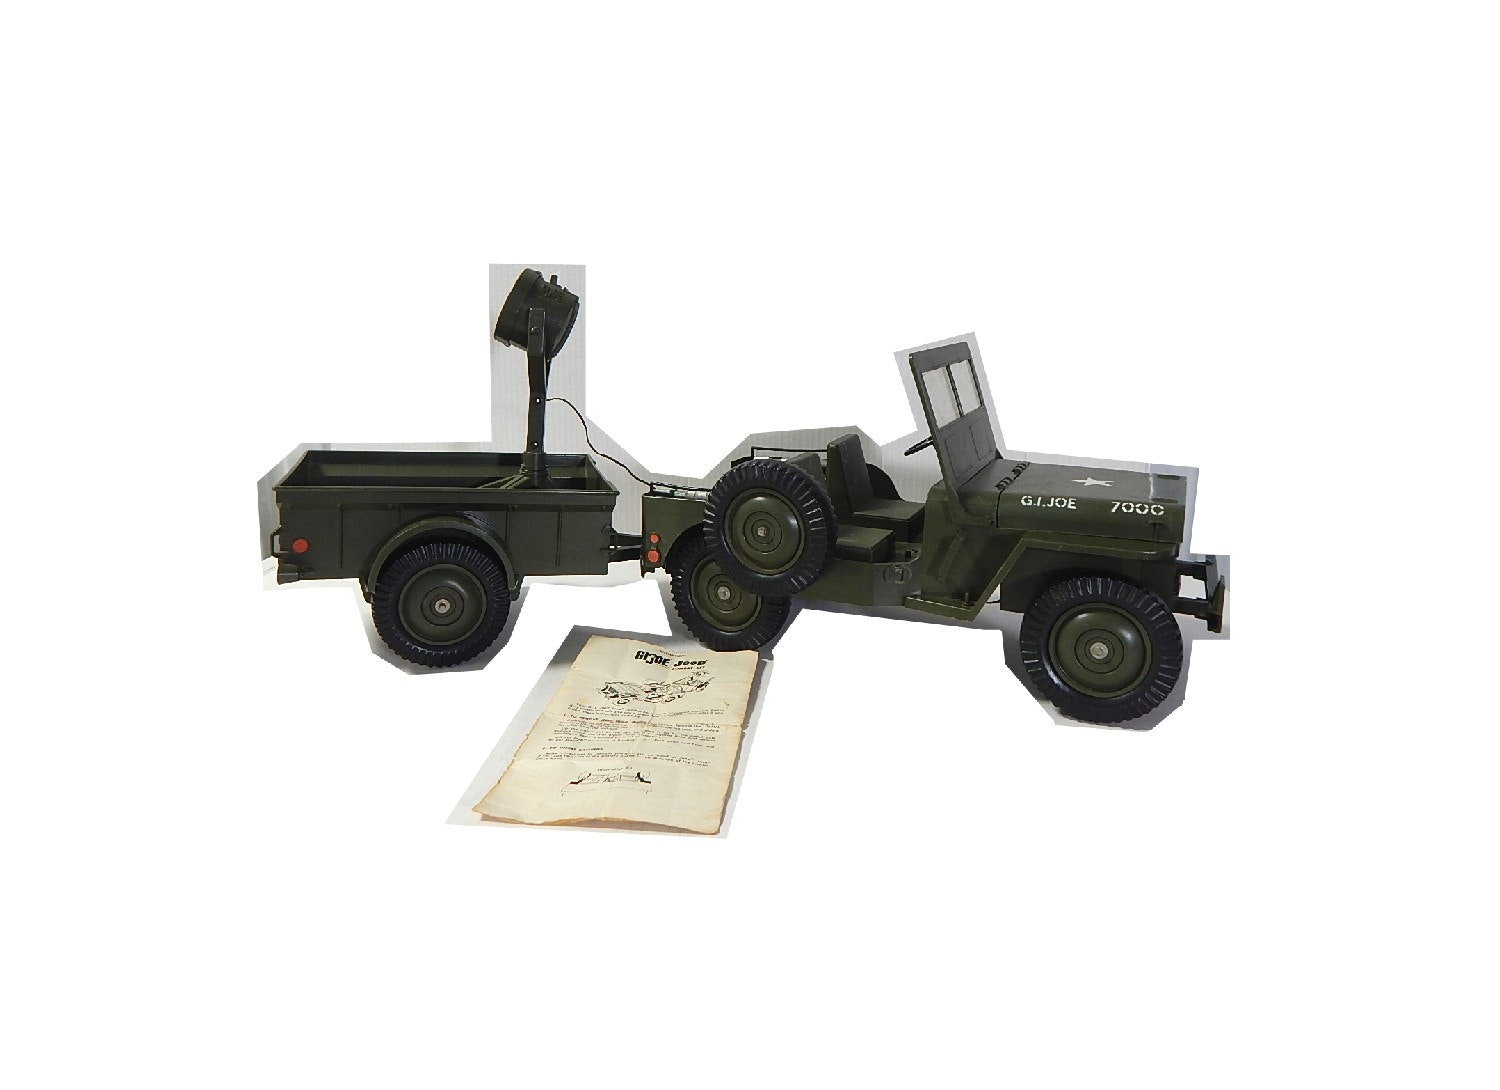 1960s G.I. Joe Jeep 7000 with Tractor and Spot Light